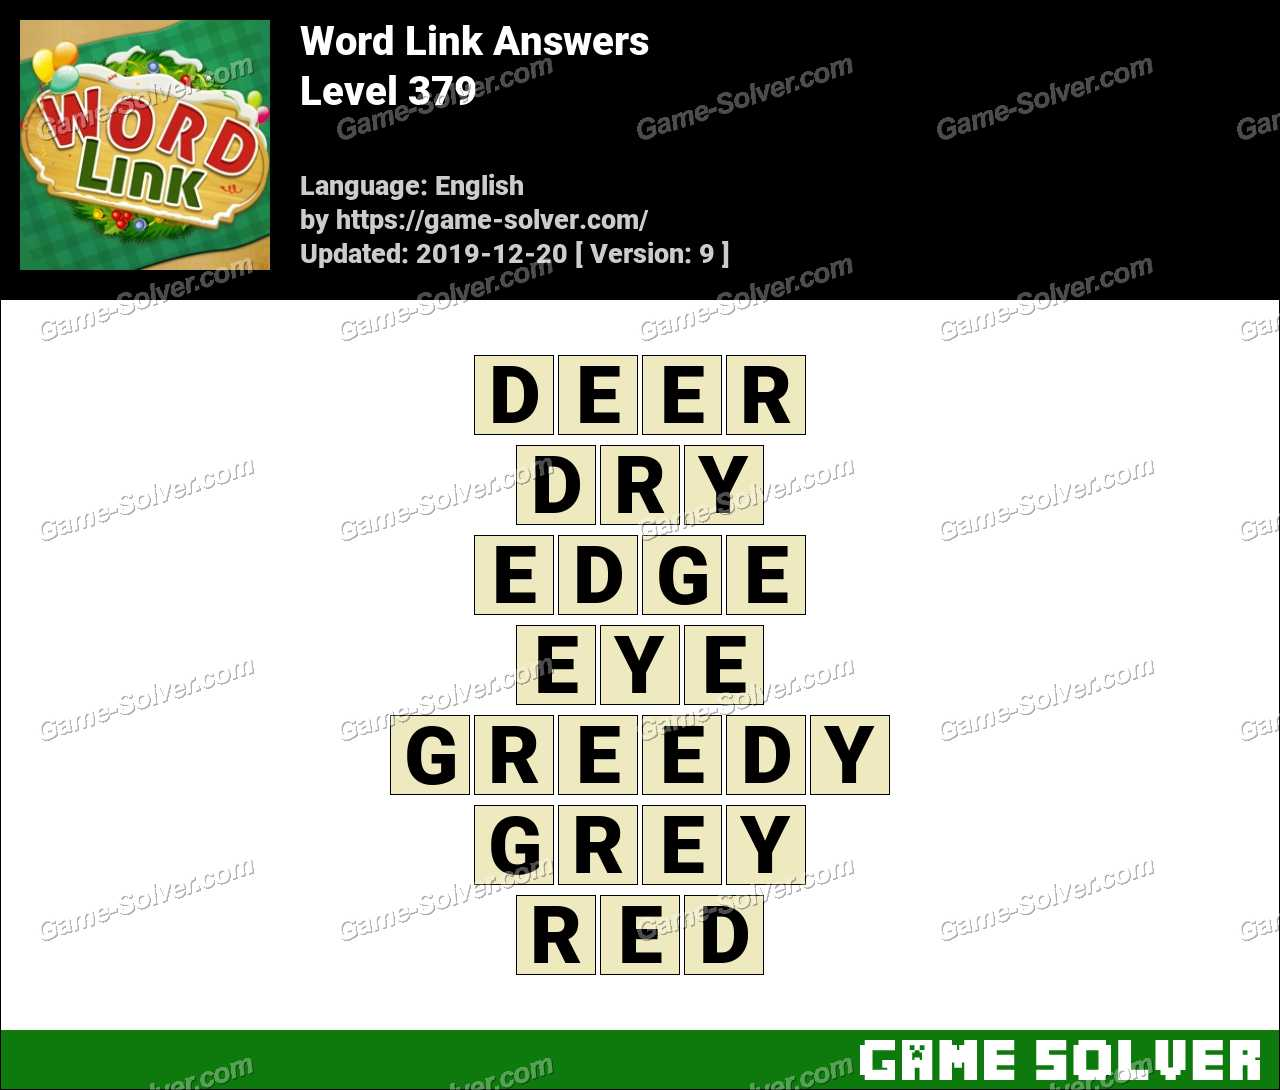 Word Link Level 379 Answers